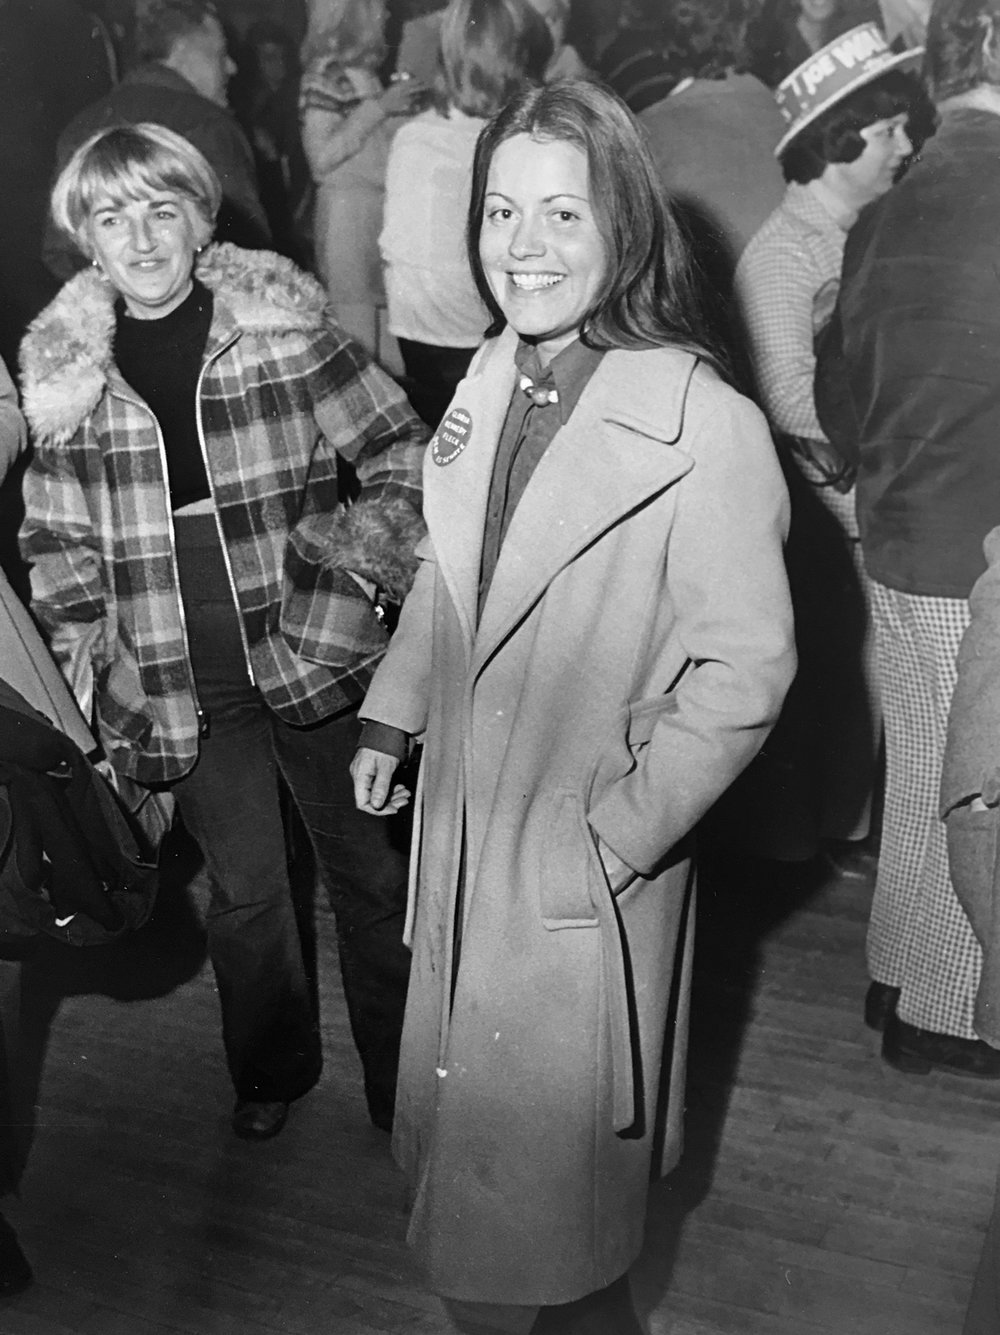 Gloria Kennedy Fleck beams as she joins other Democrats in celebrating their victories in November of 1976. Though unendorsed, she was elected the senator for District 15 in Warwick.  Courtesy of The Providence Journal/George E. Rooney.